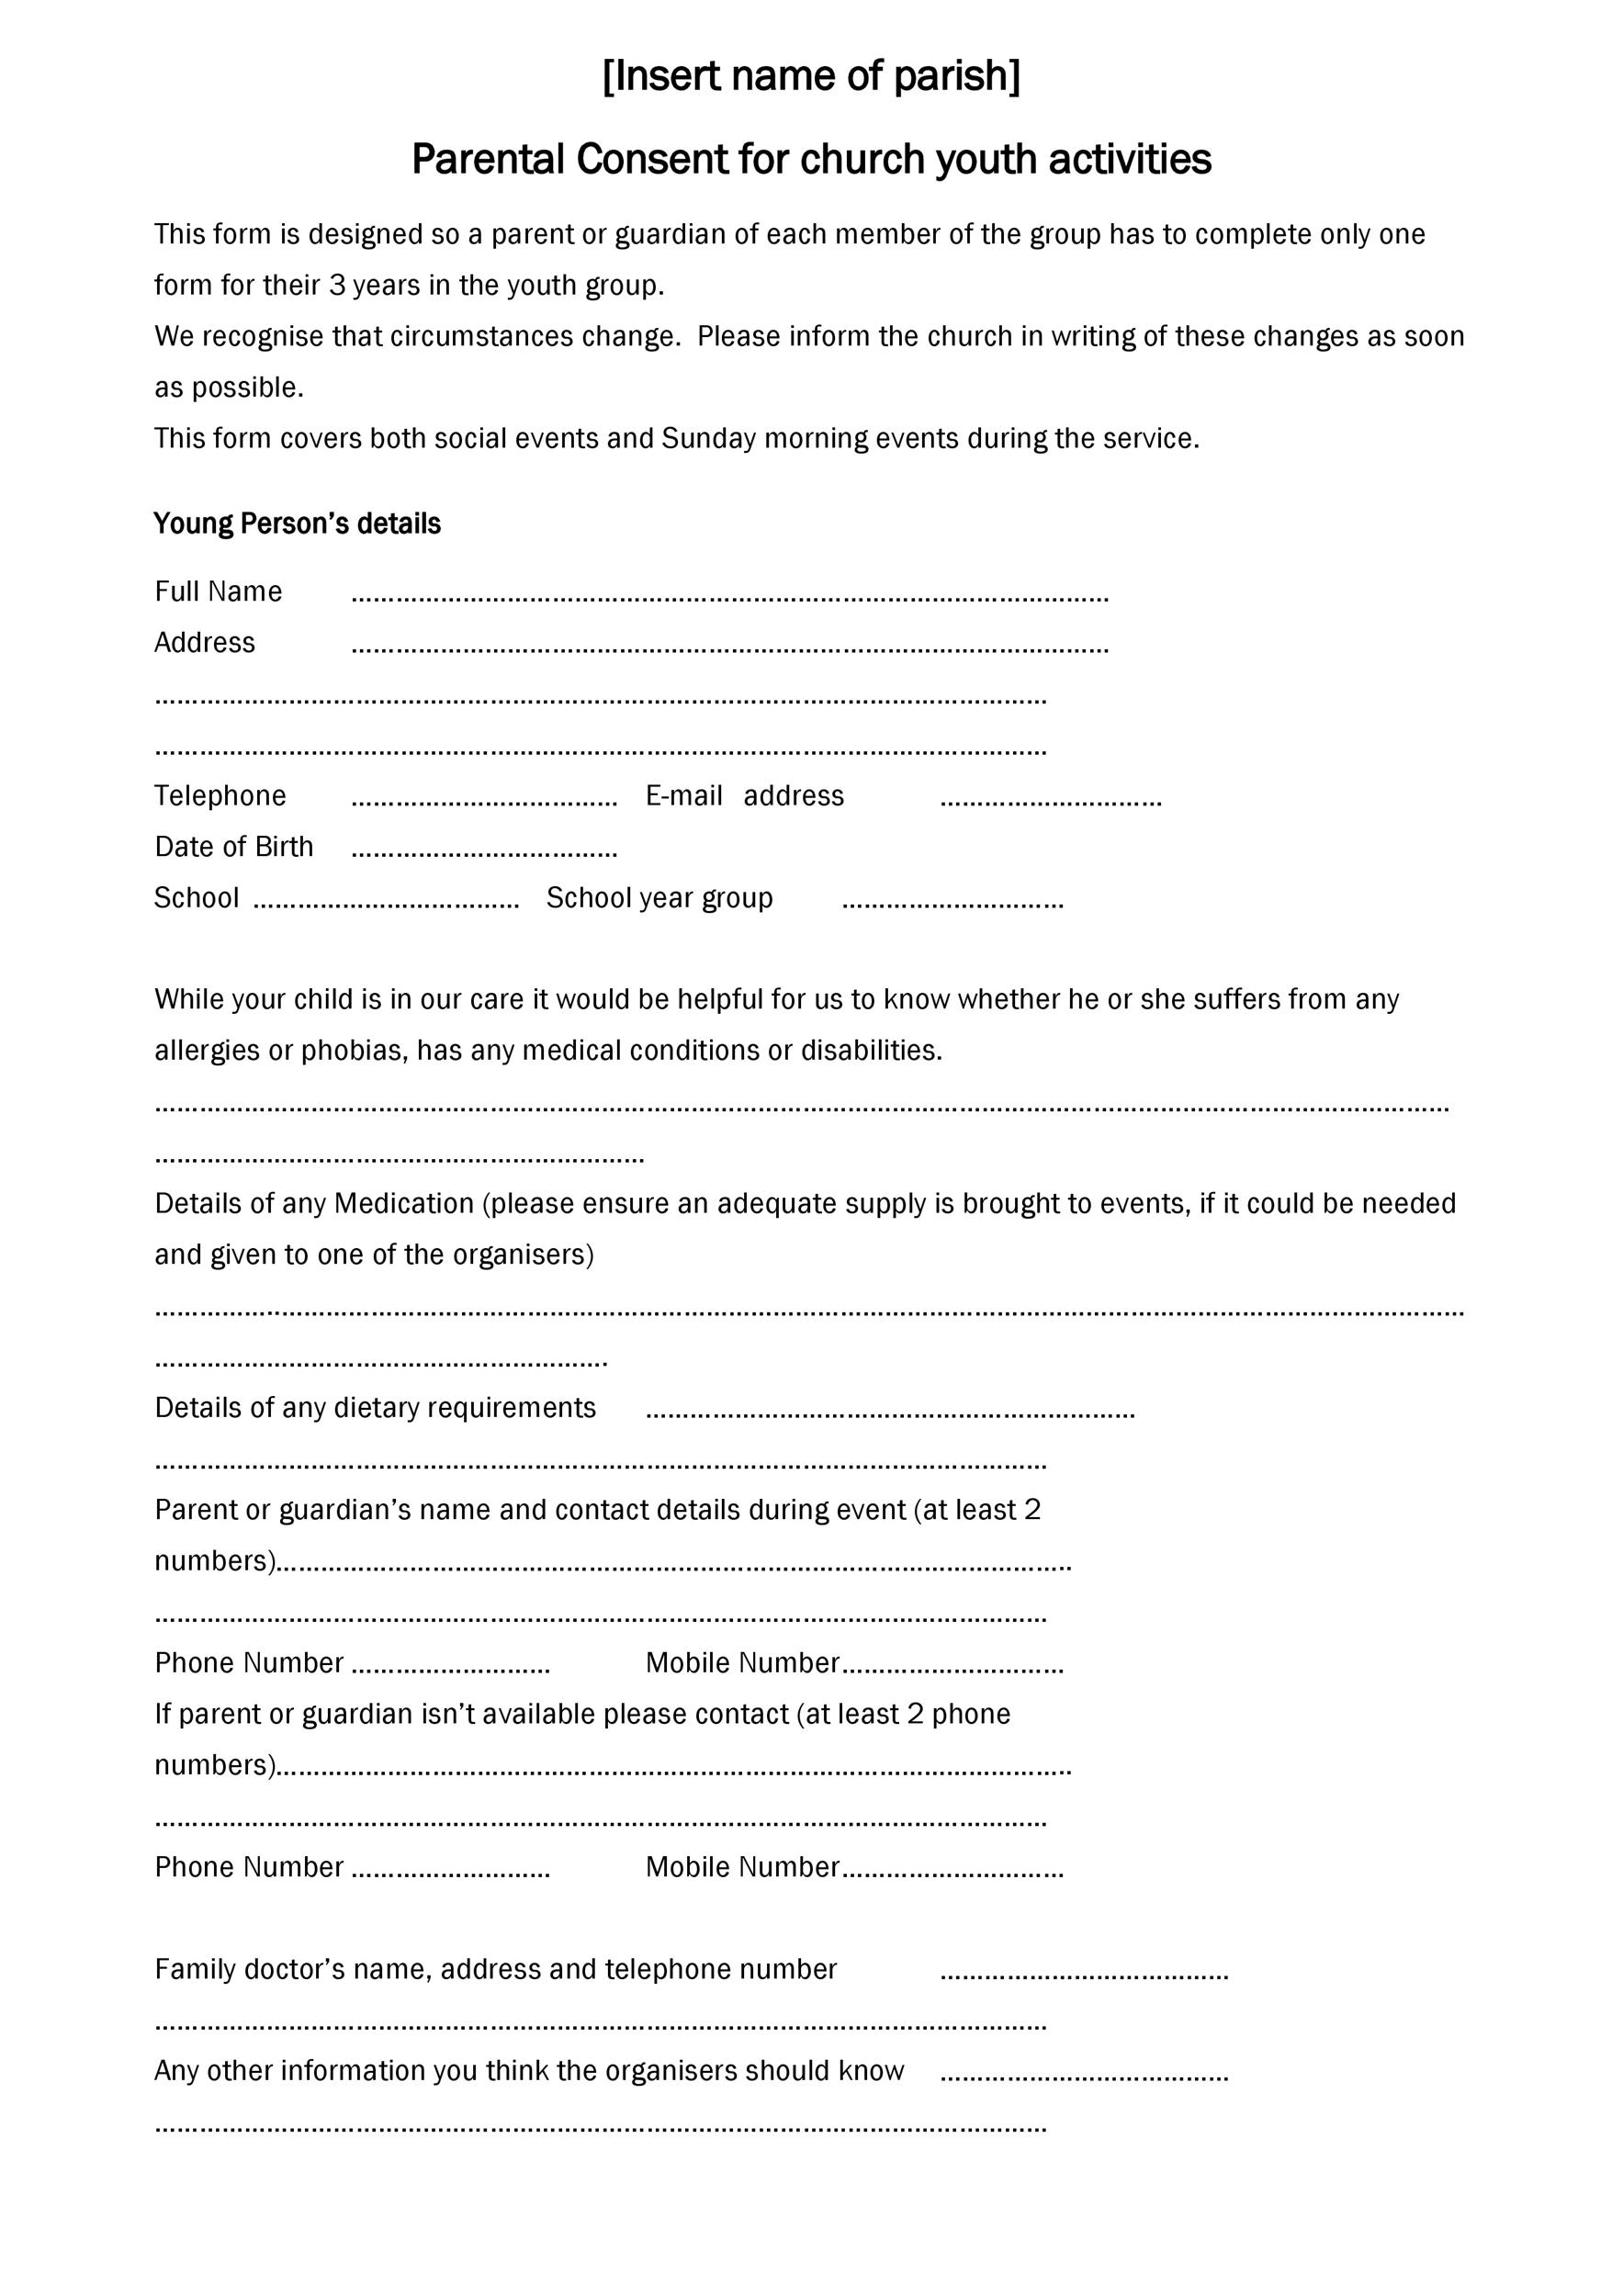 Free parental consent form template 50